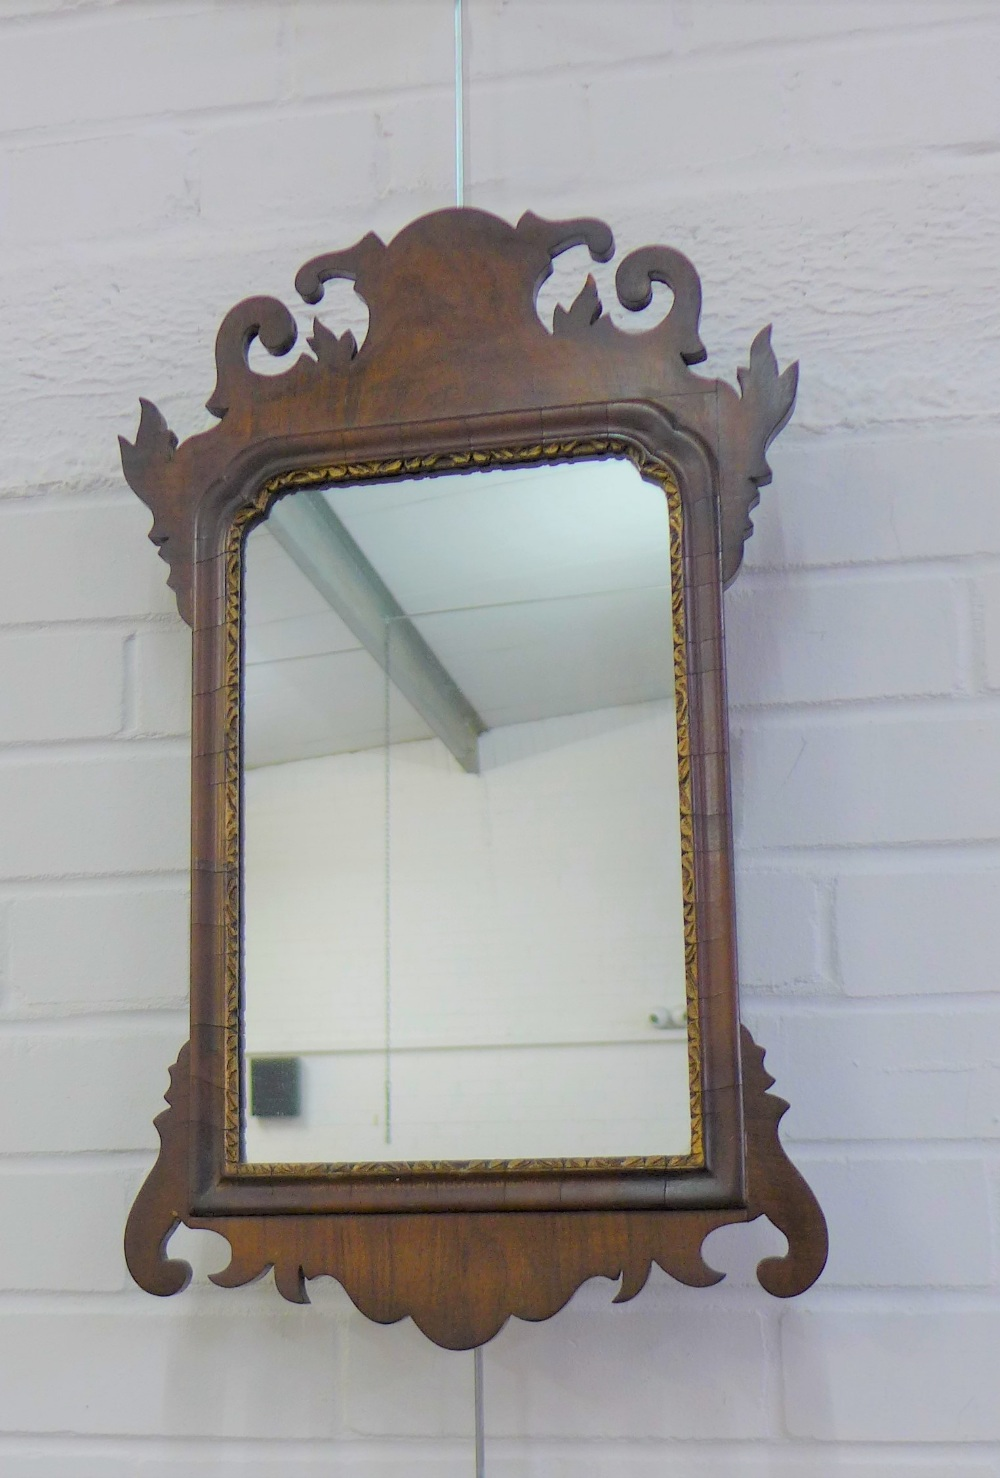 Lot 201 - Georgian style mahogany framed wall mirror with a rectangular plate, 55 x 35cm